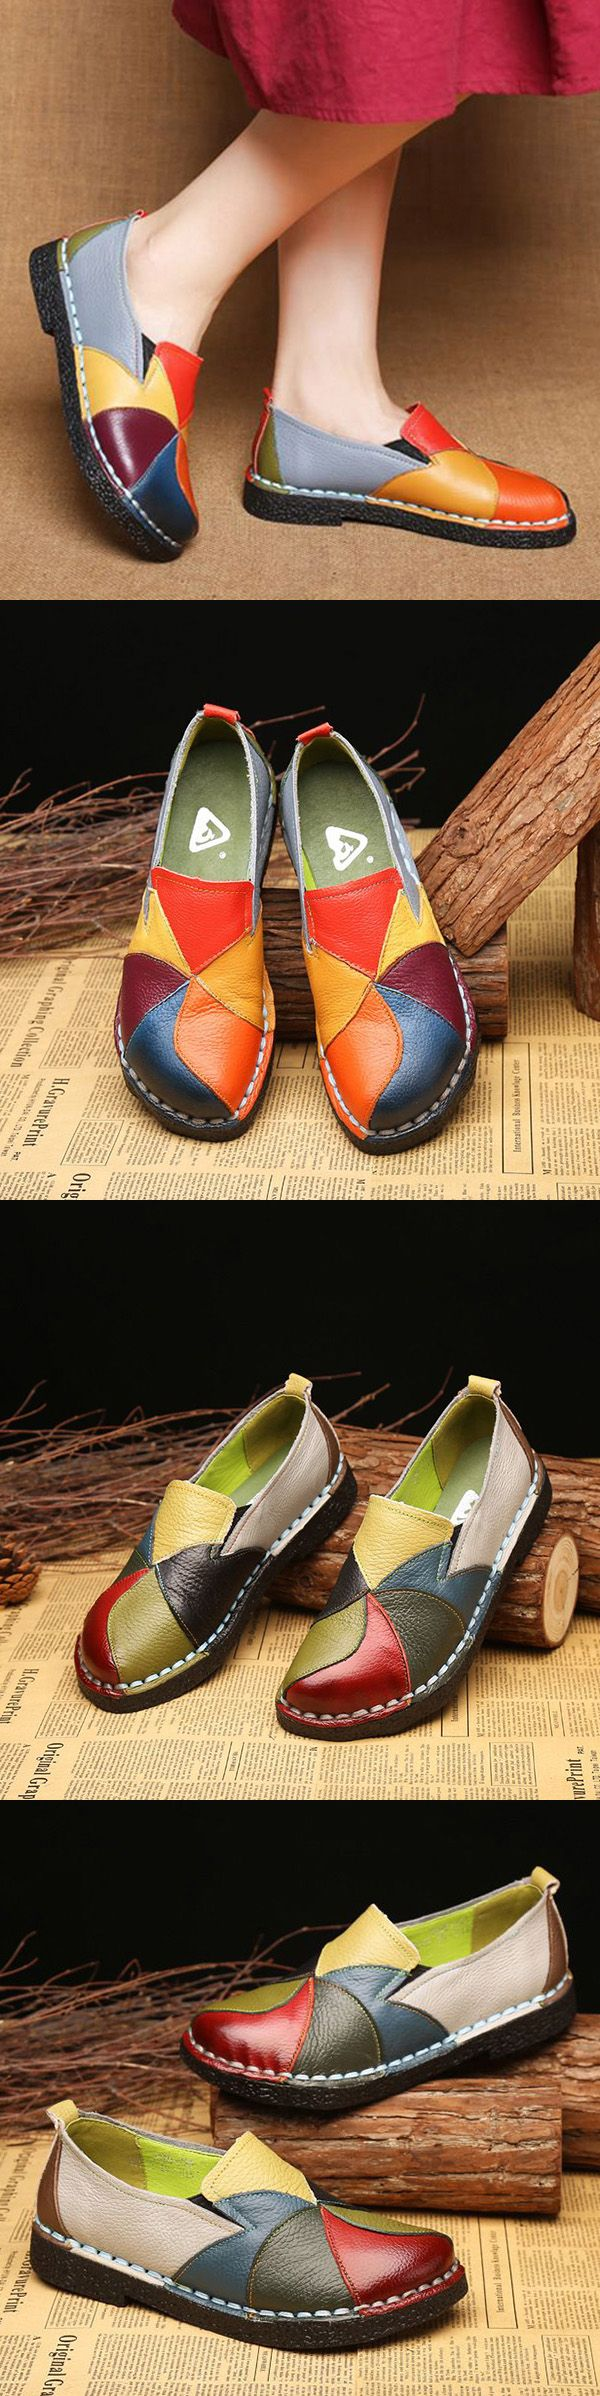 US$34.46 SOCOFY Handmade Splicing Leather Soft Flat Loafers